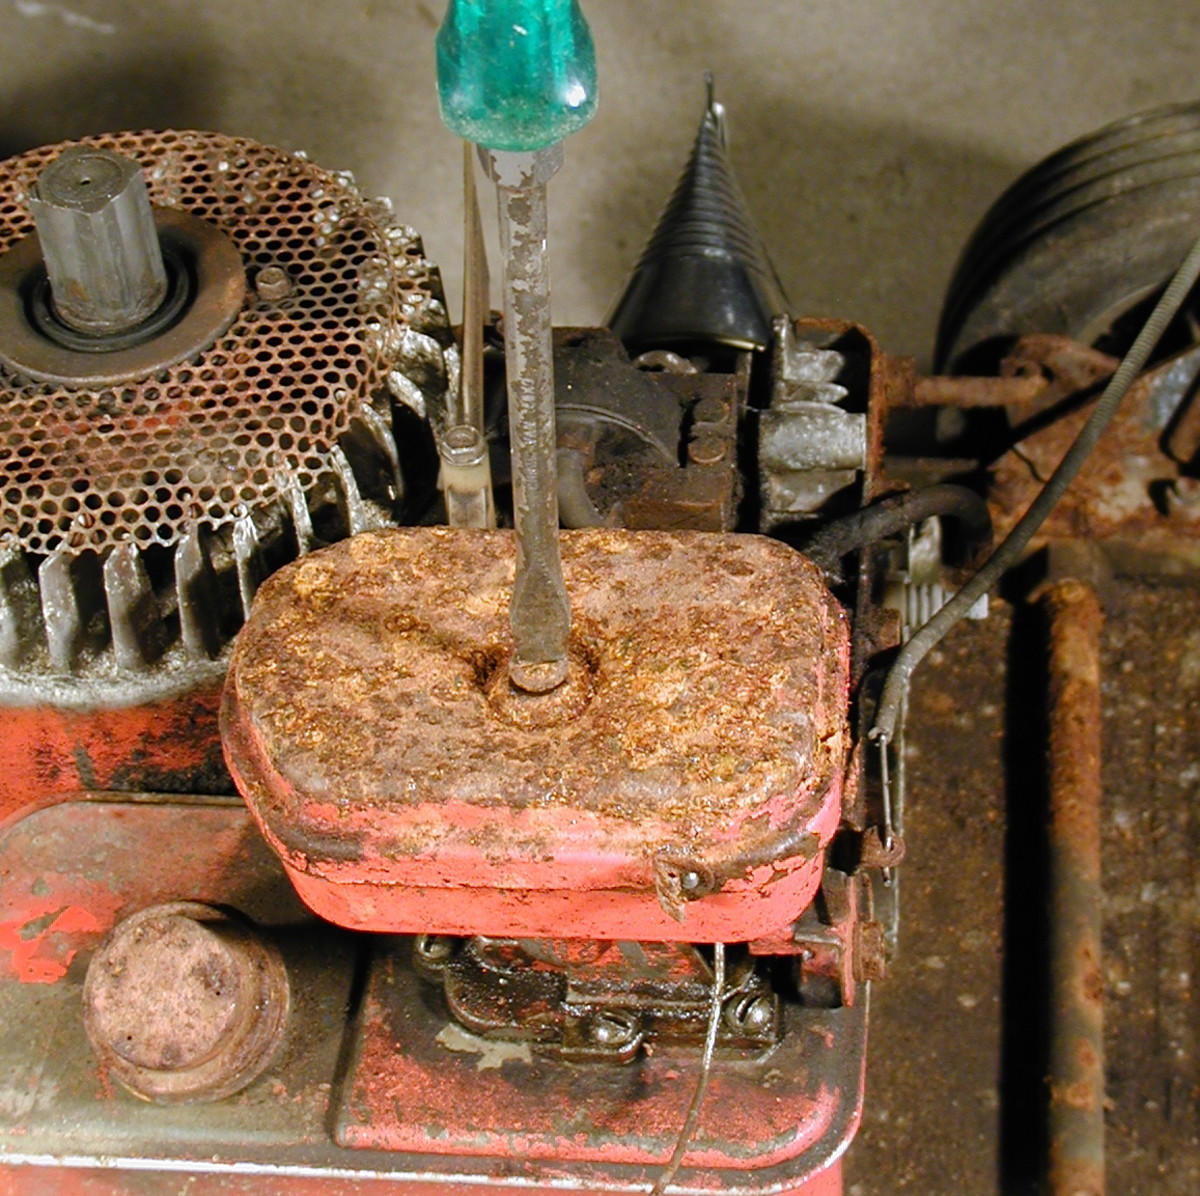 First remove the air filter.